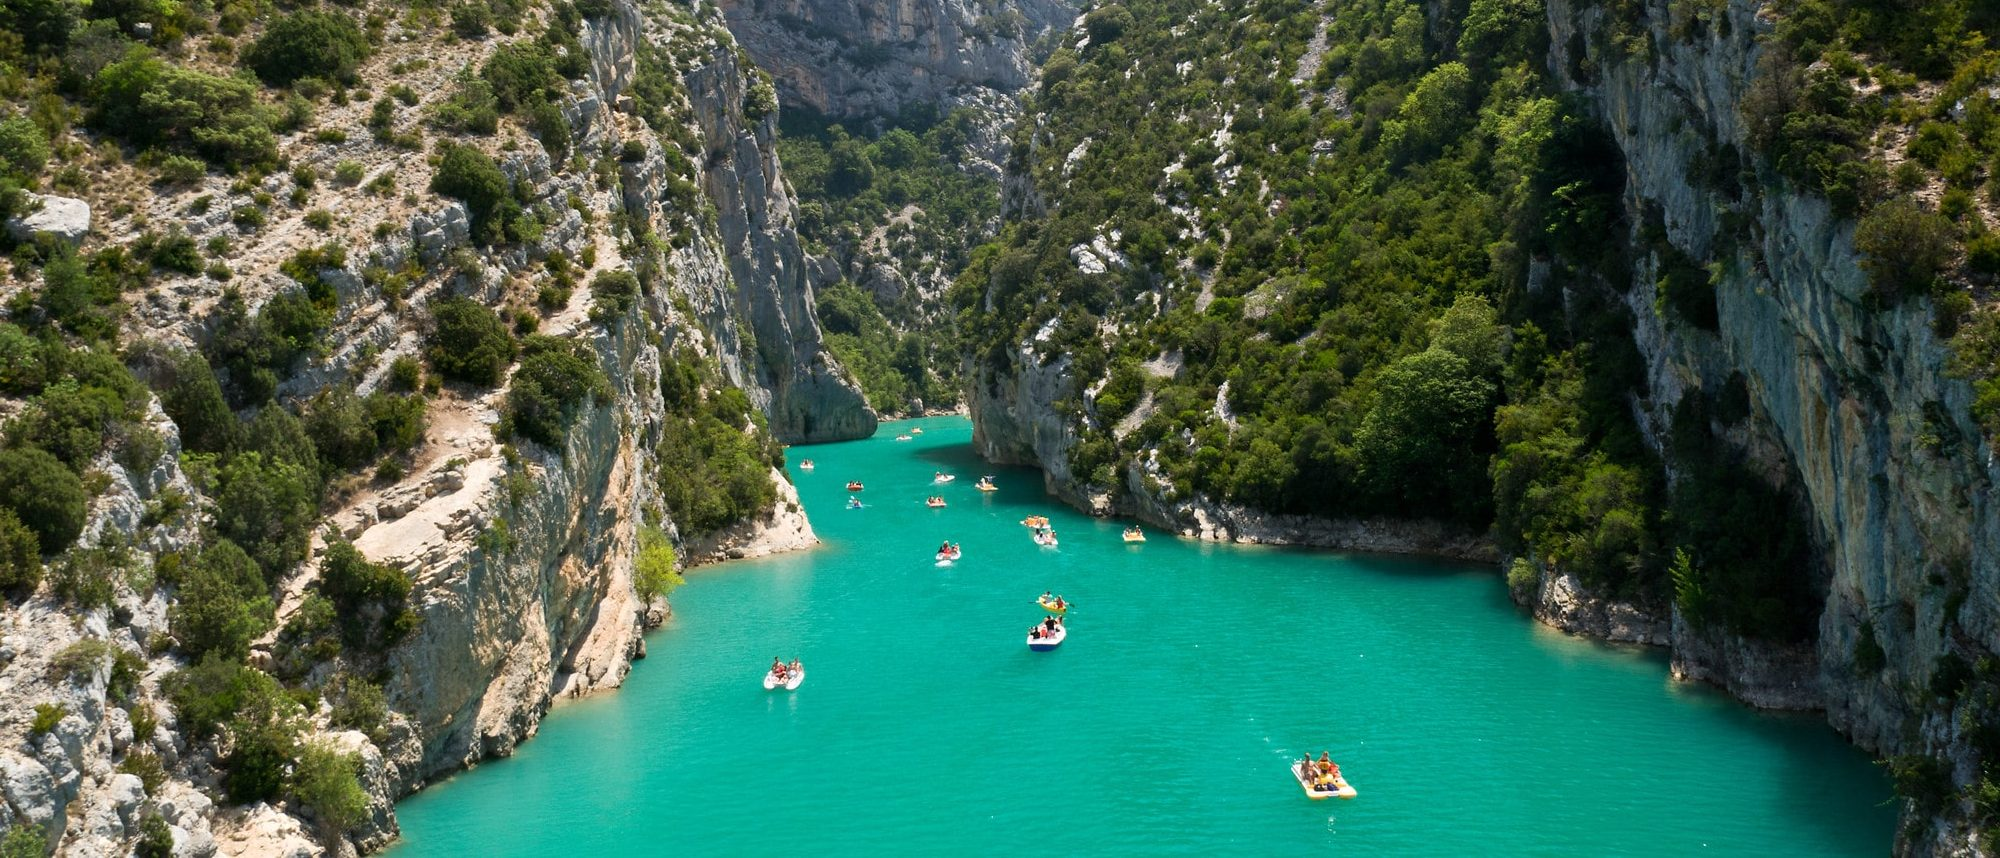 The beautiful turquoise blue waters of Gorges du Verdon.